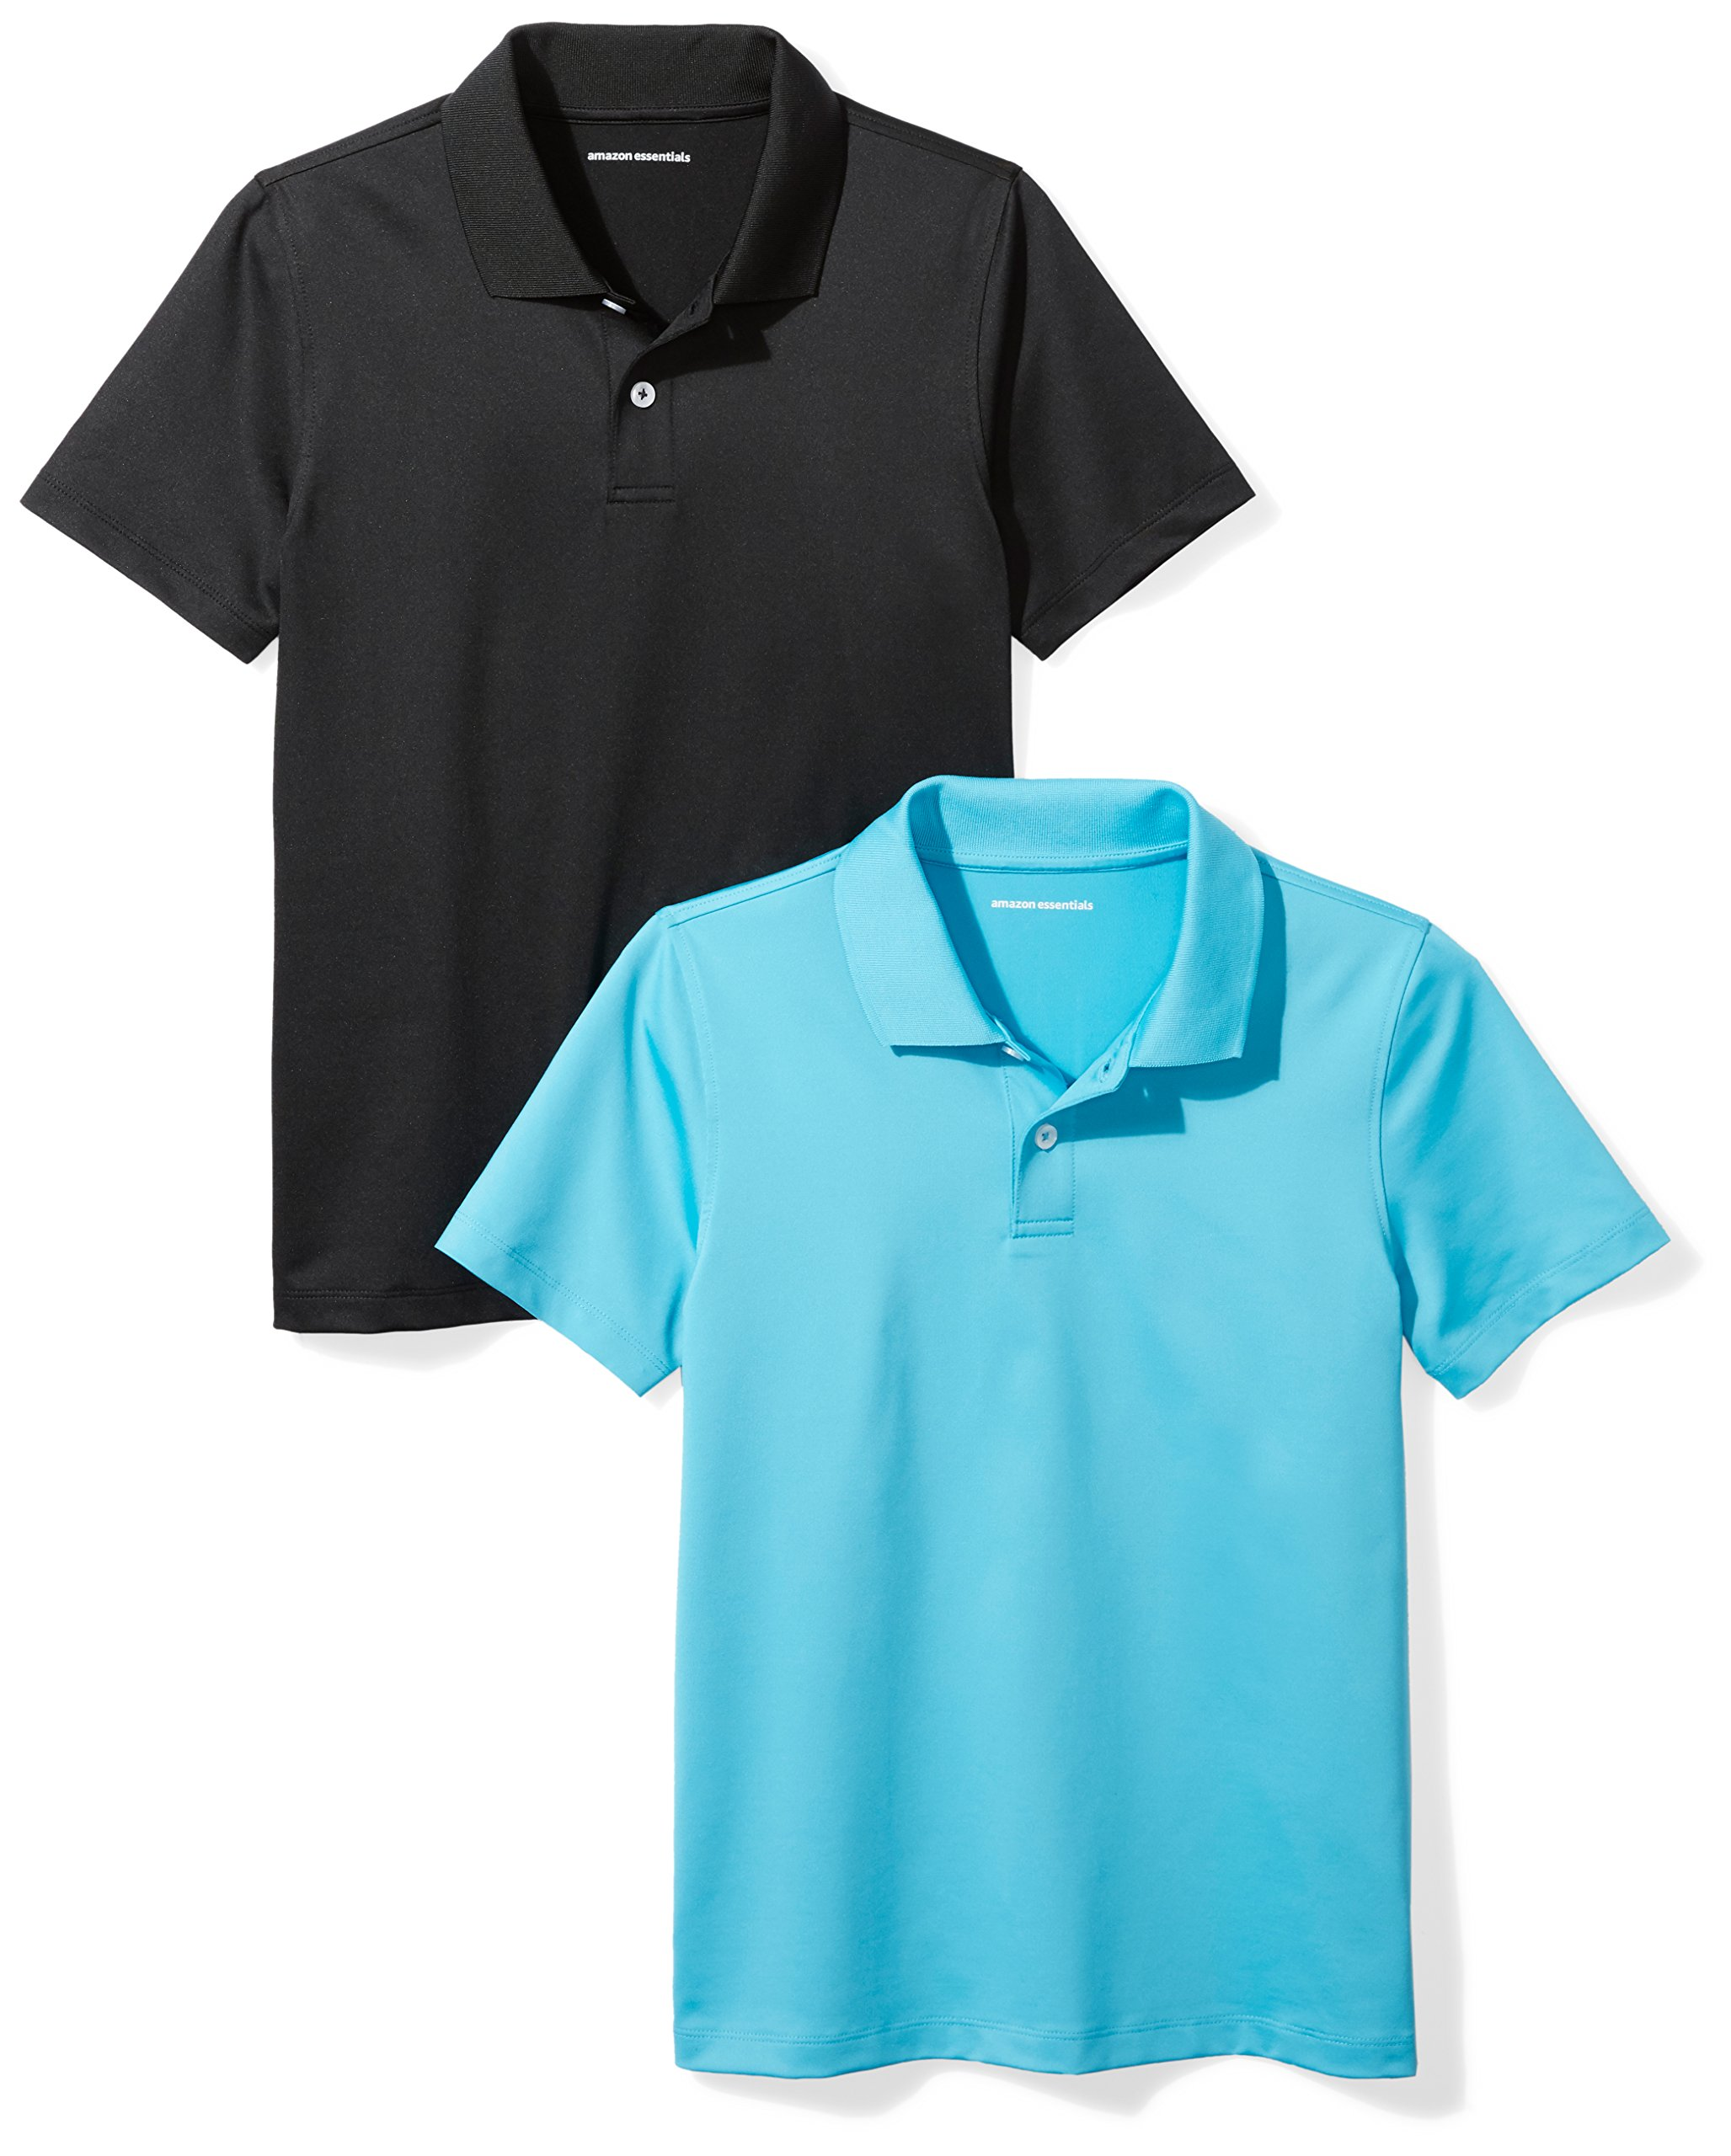 Amazon Essentials Boys' 2-Pack Performance Polo, Canyon Blue/Black, M (8)